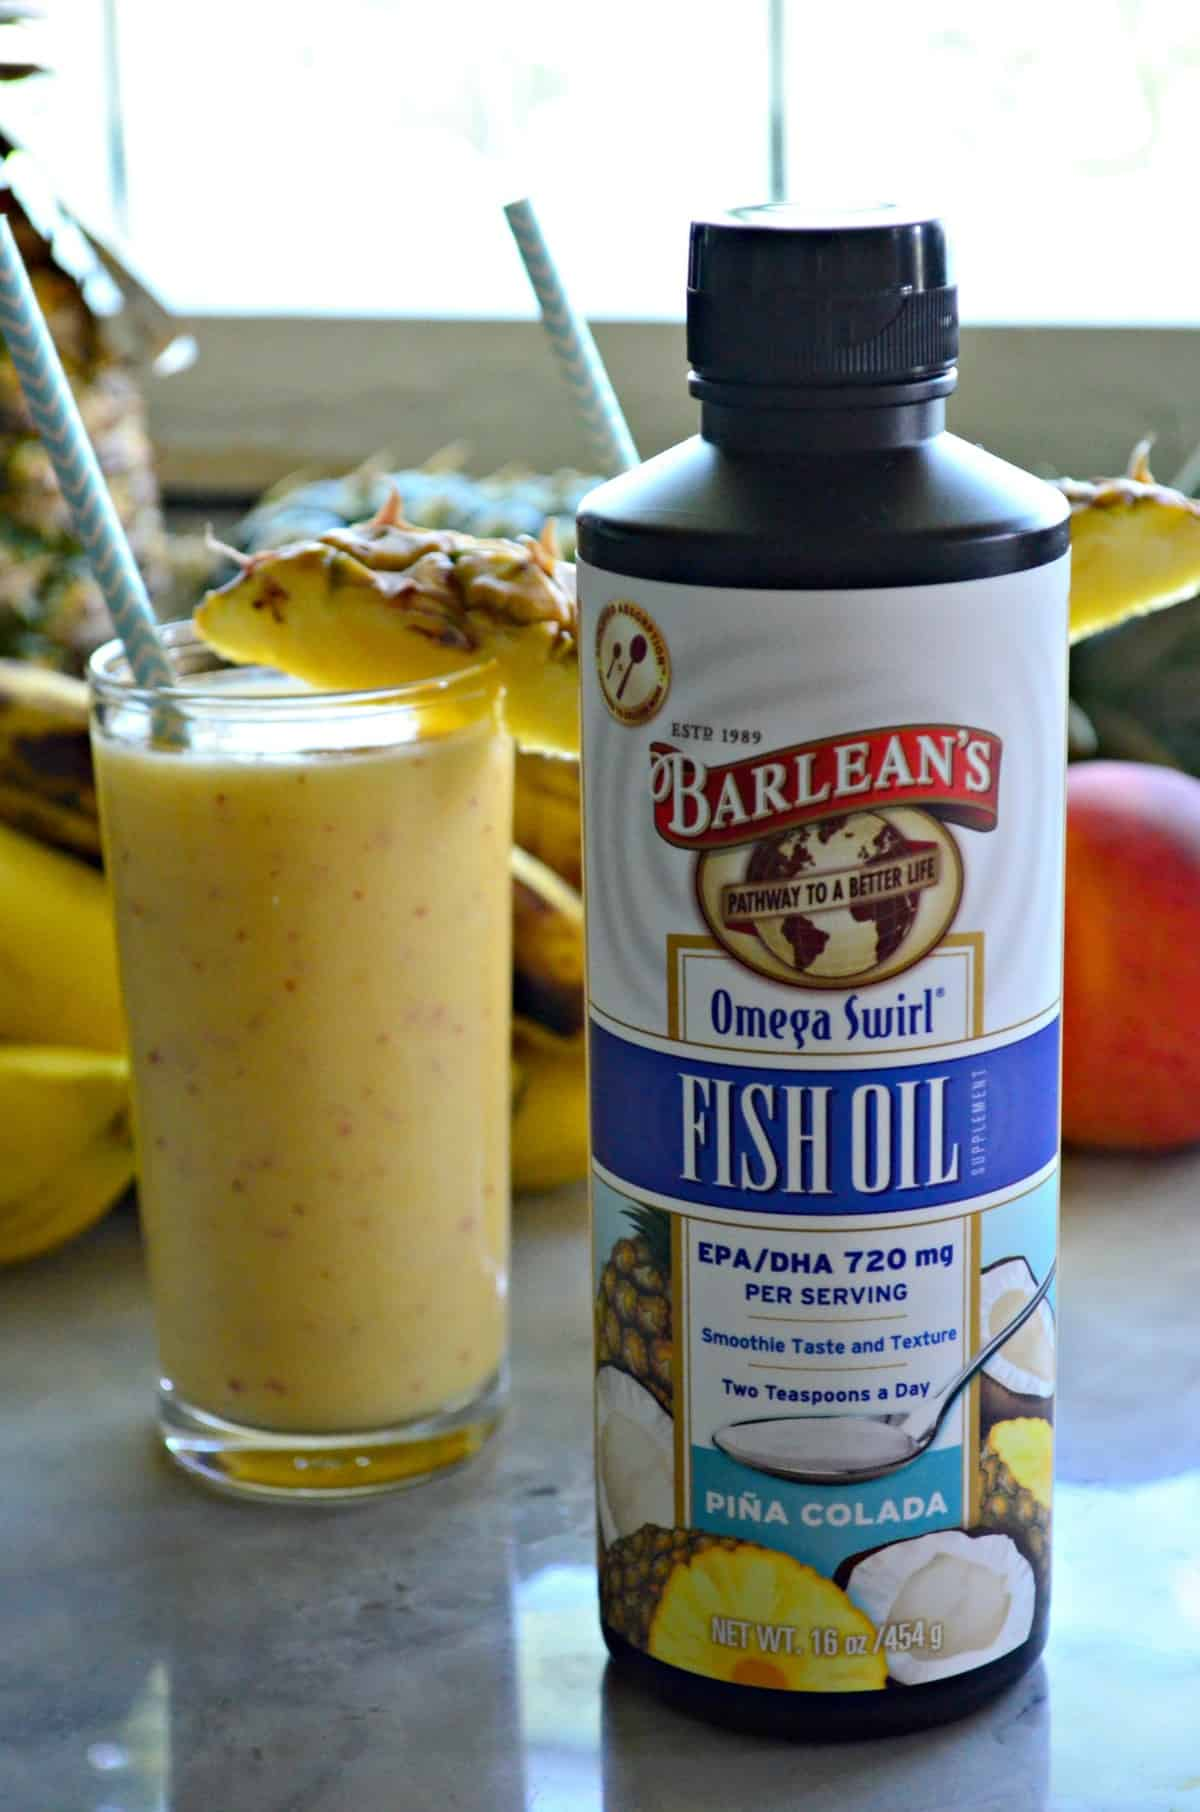 Barleans Fish Oil Omega Swirl Pina Colada Flavor next to glass of yellow smoothie with straw and pineapple slice rim.